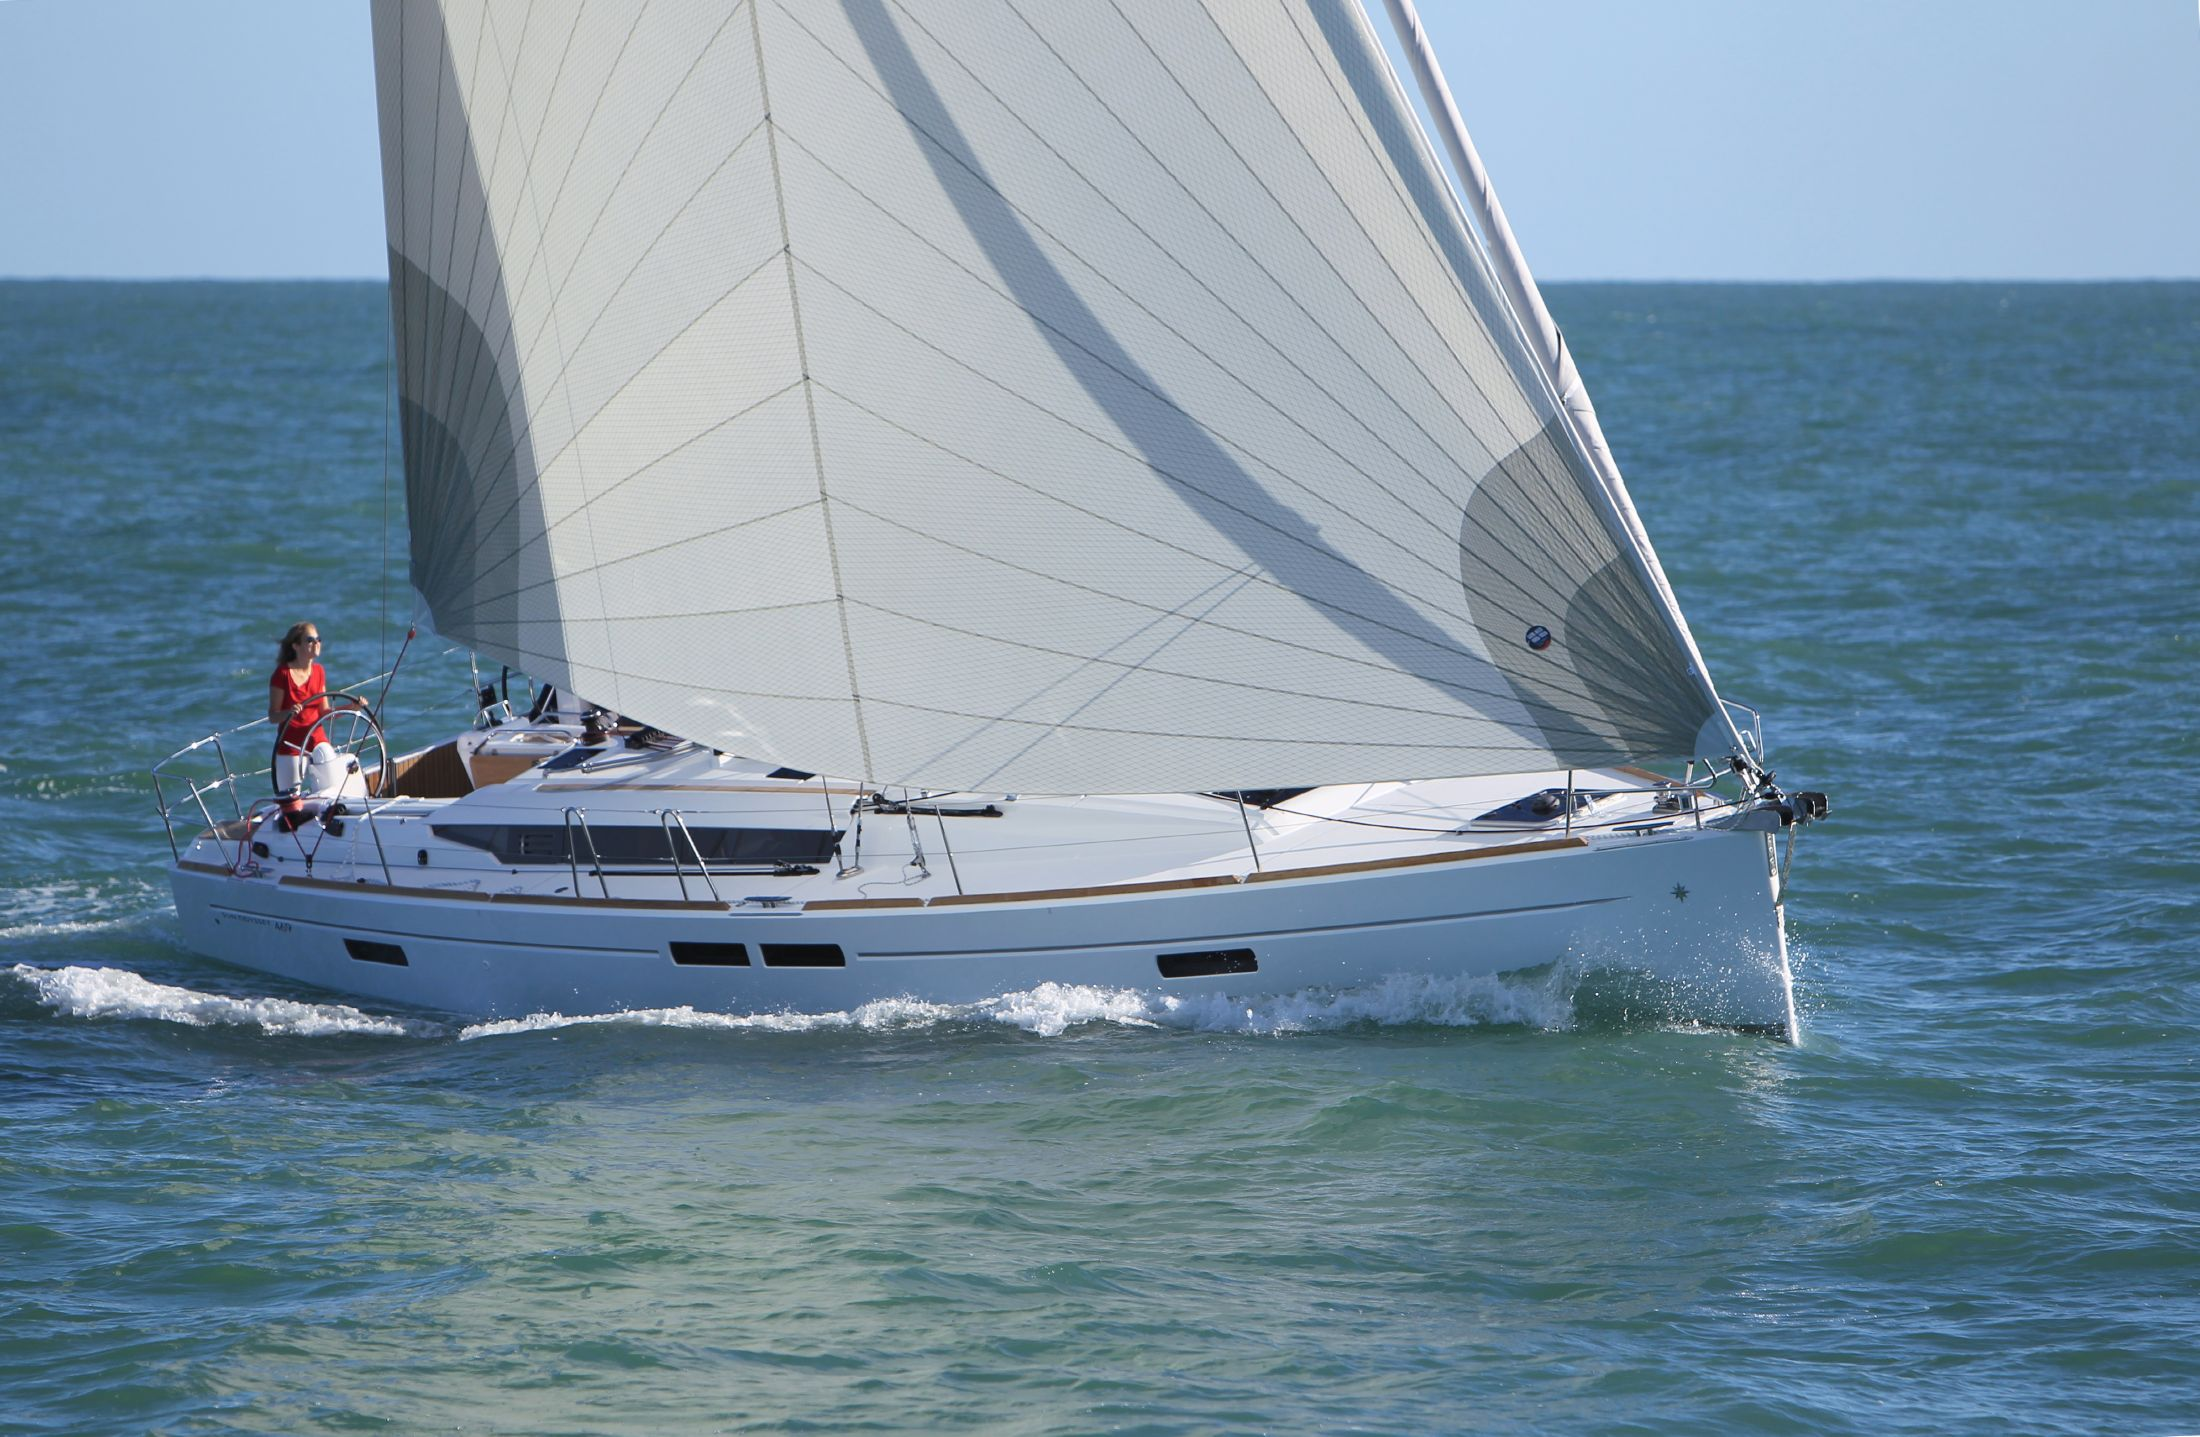 4111427_2_20121018174043_0_0&w=2200&h=1437&t=1493173104000 2000 jeanneau sun odyssey 45 2 sail boat for sale www yachtworld com jeanneau wiring diagram at mifinder.co